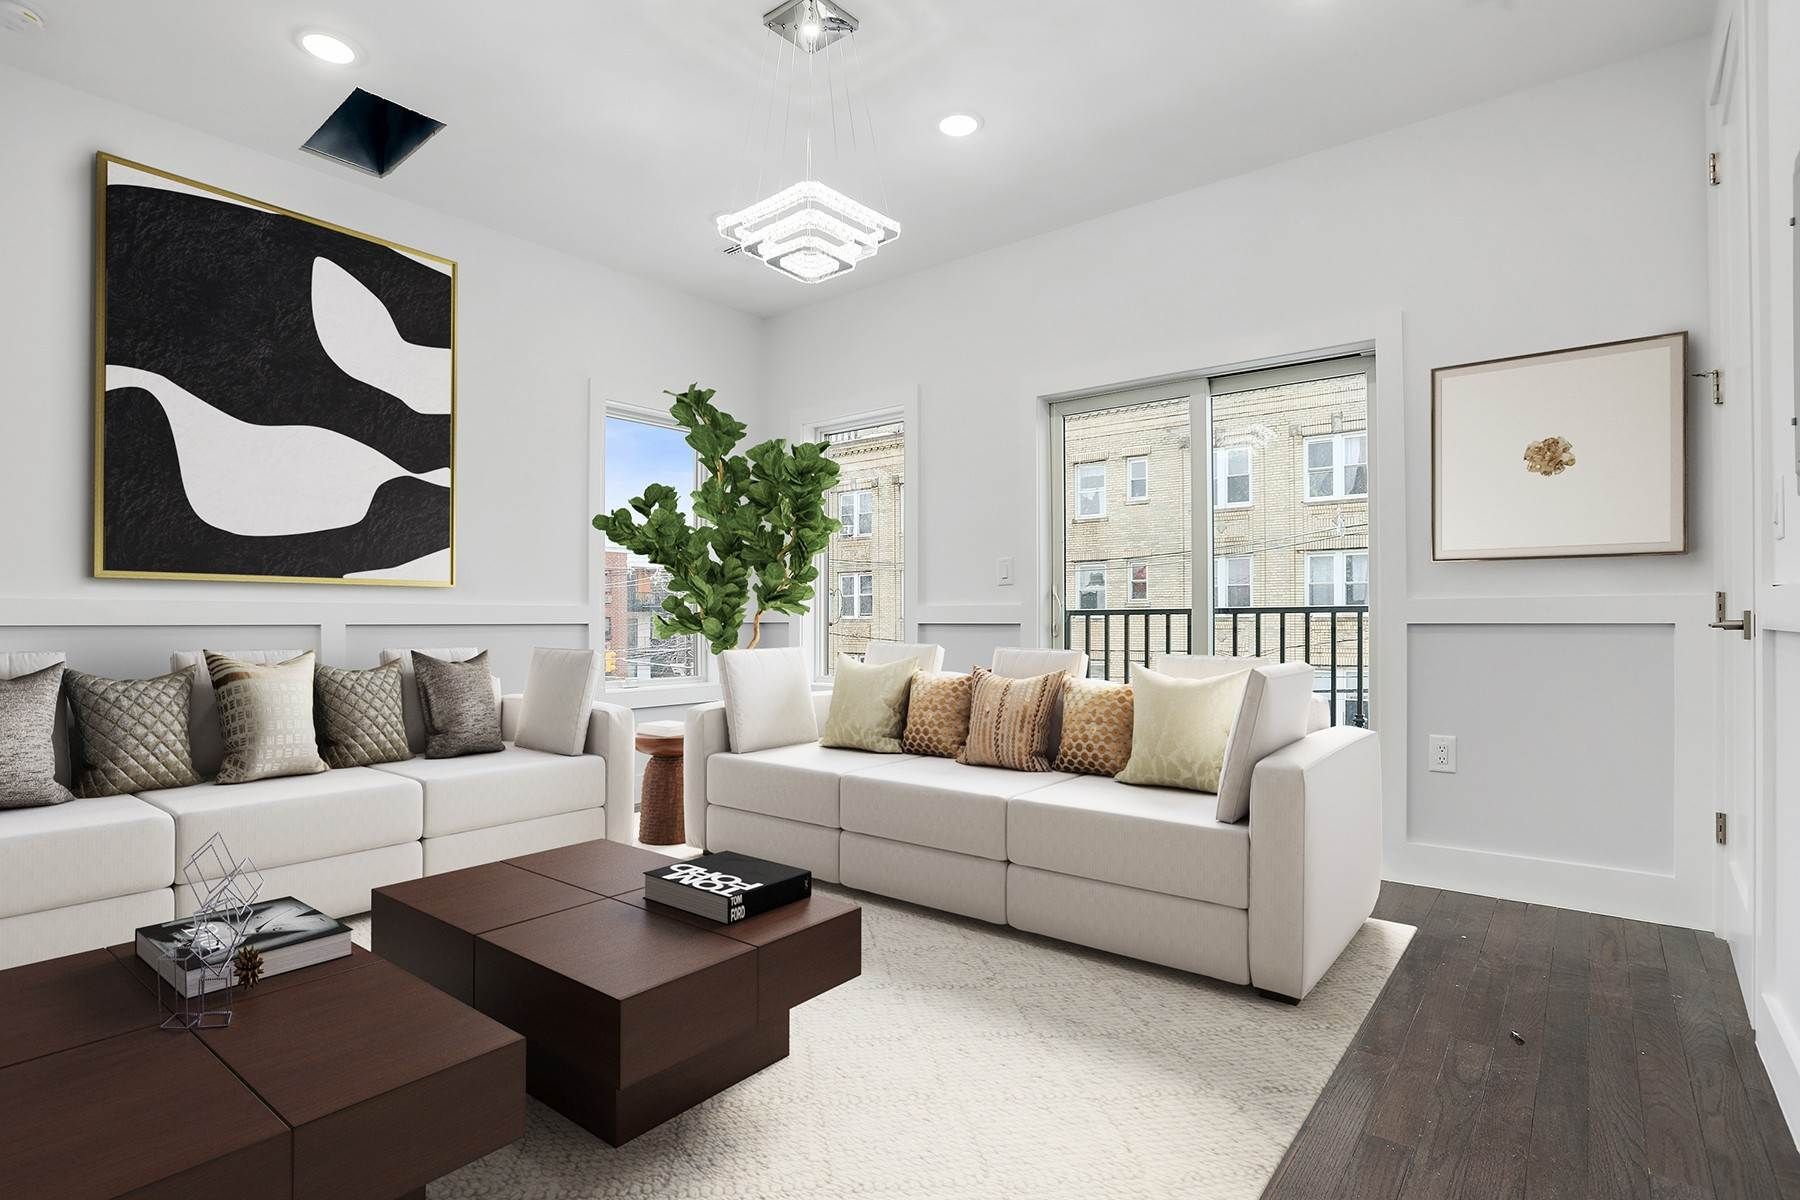 Condominiums for Sale at Welcome home to this brand new constructed constructed 1 bed/ 1 bath condo. 66 Poplar Street, Unit 5 Jersey City, New Jersey 07307 United States